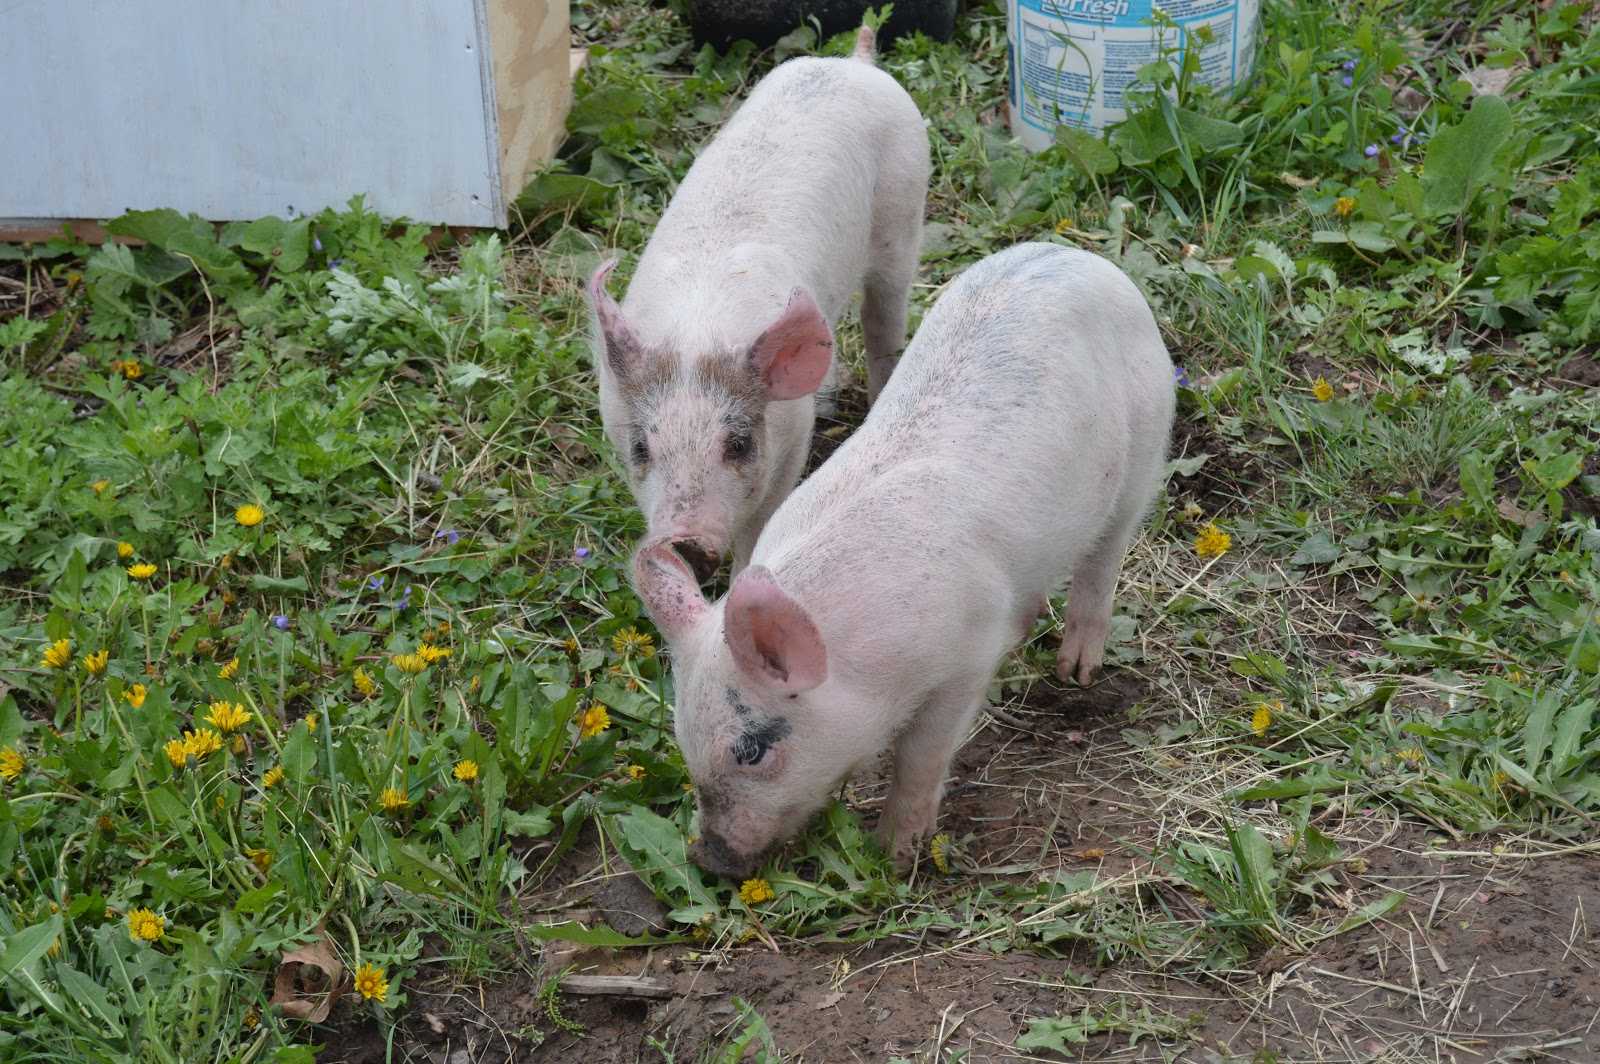 It never seemed like the right time but this year we decided to take the  plunge. We contacted our friend who raises pigs and he came through with  these two ...